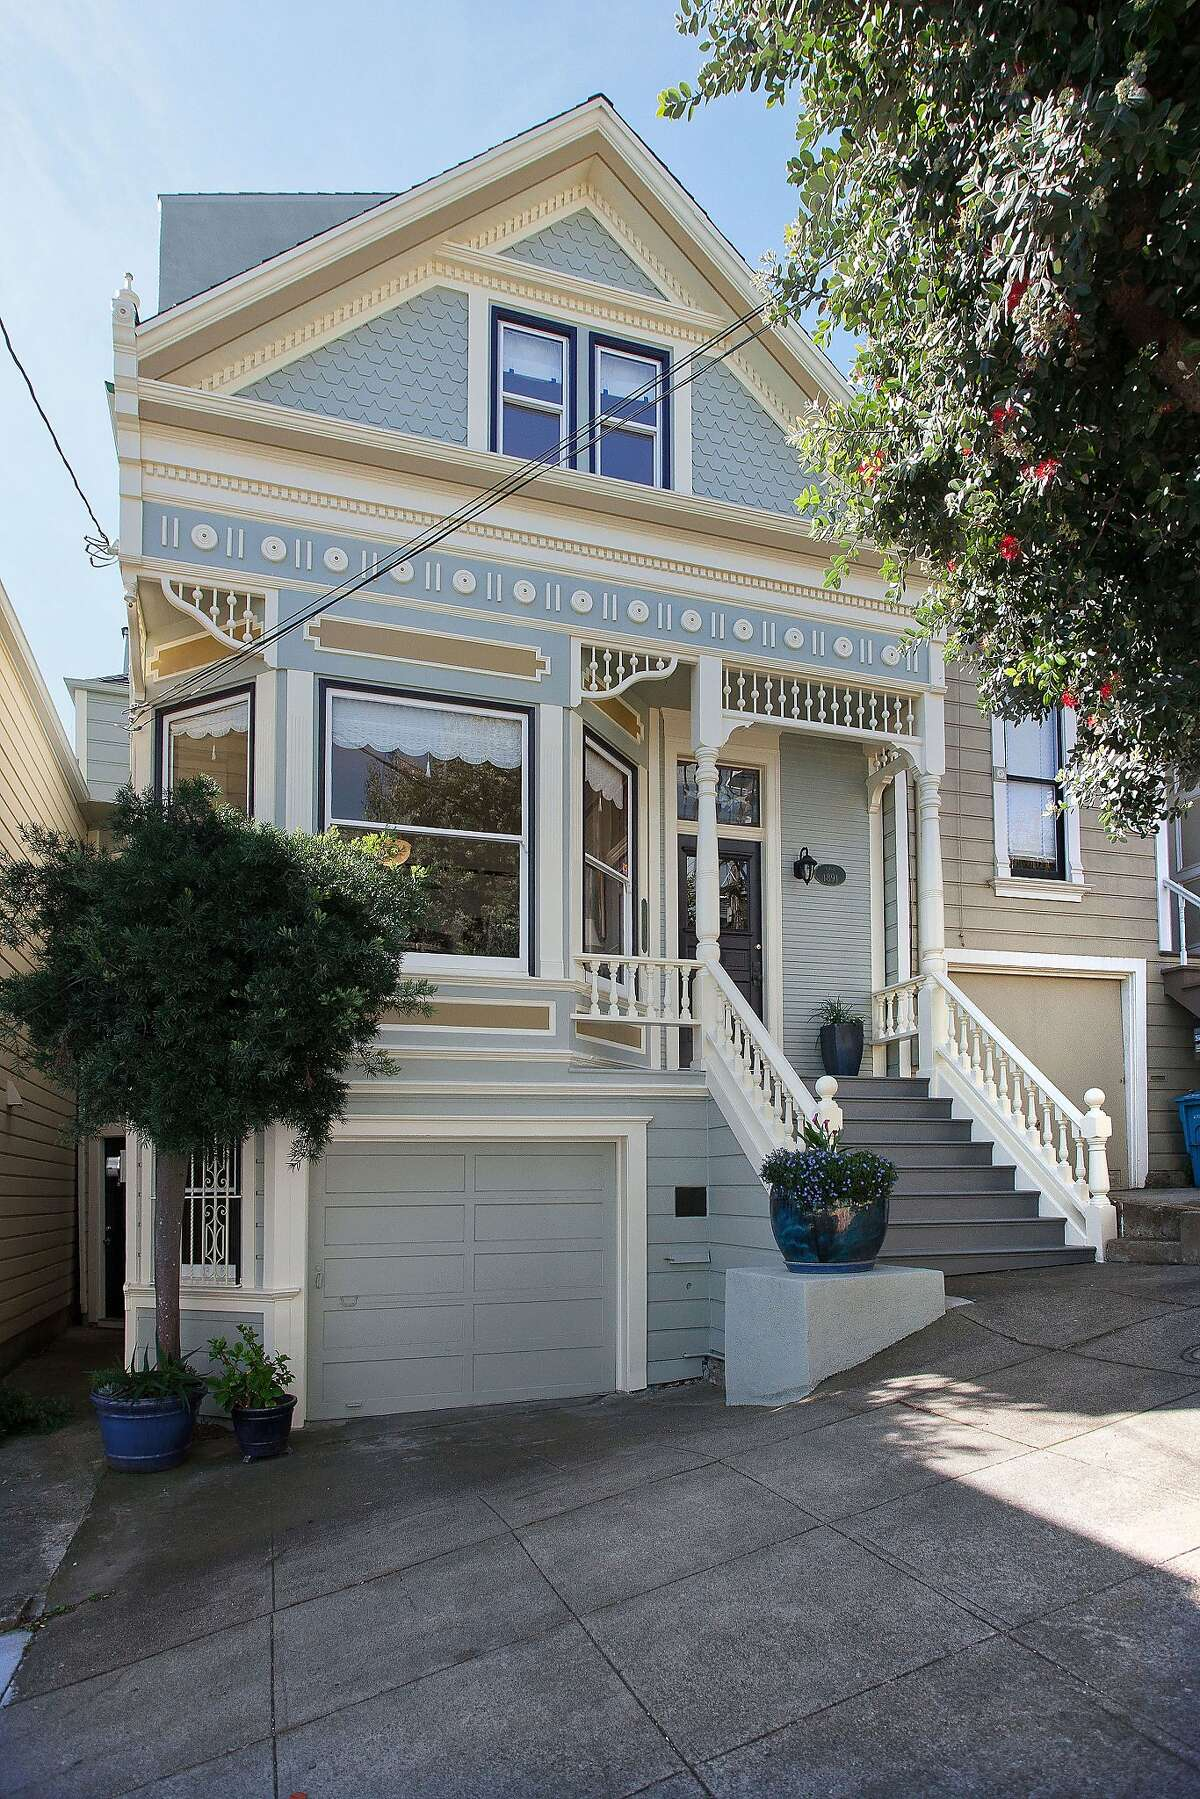 4449 23rd Street in Noe Valley sold for $2.9m.